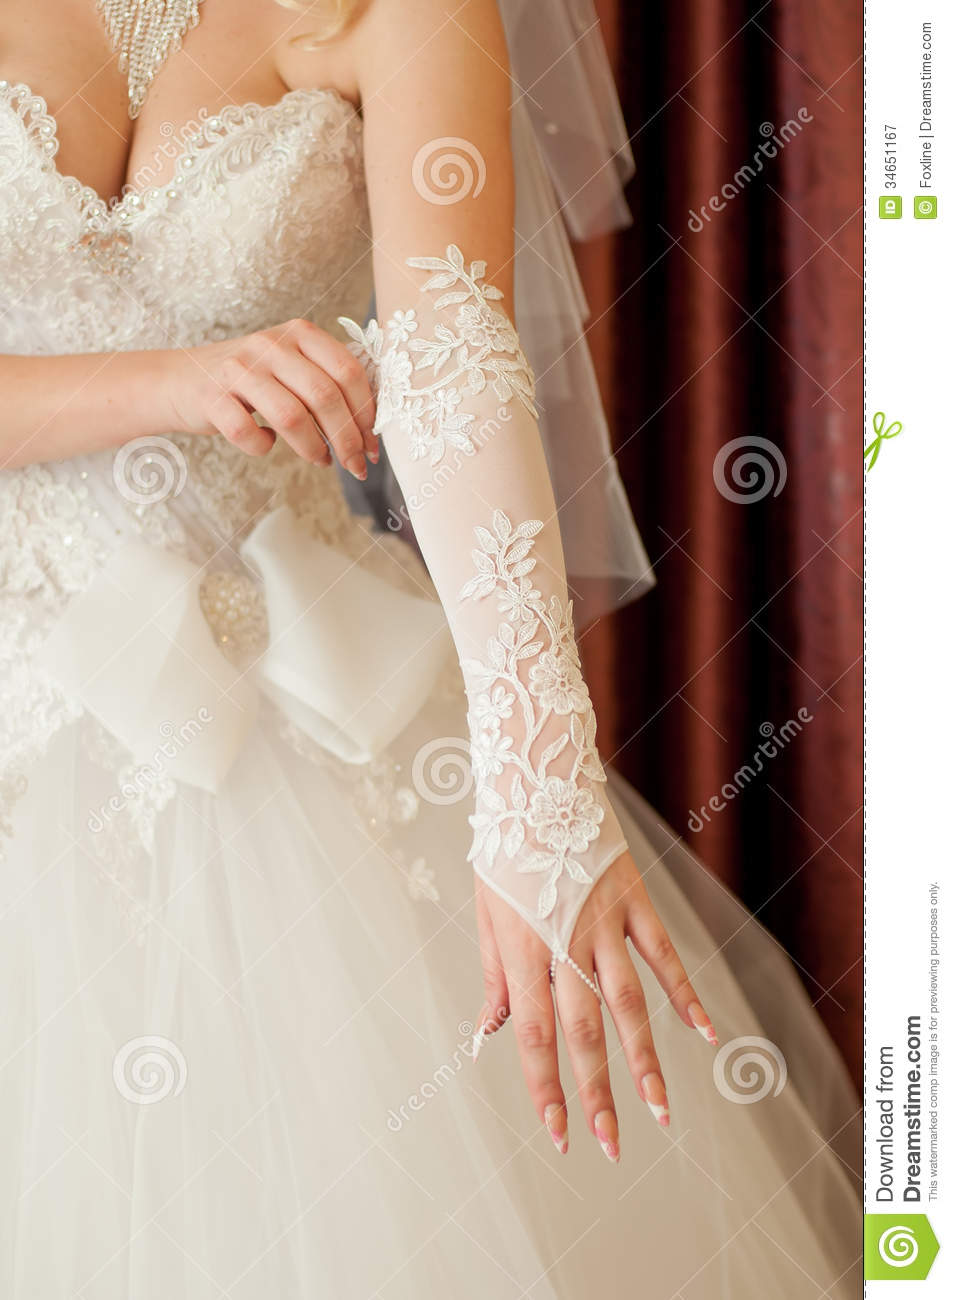 Bride Dresses On Their Hands White Gloves Royalty Free Stock Photography  Image 34651167